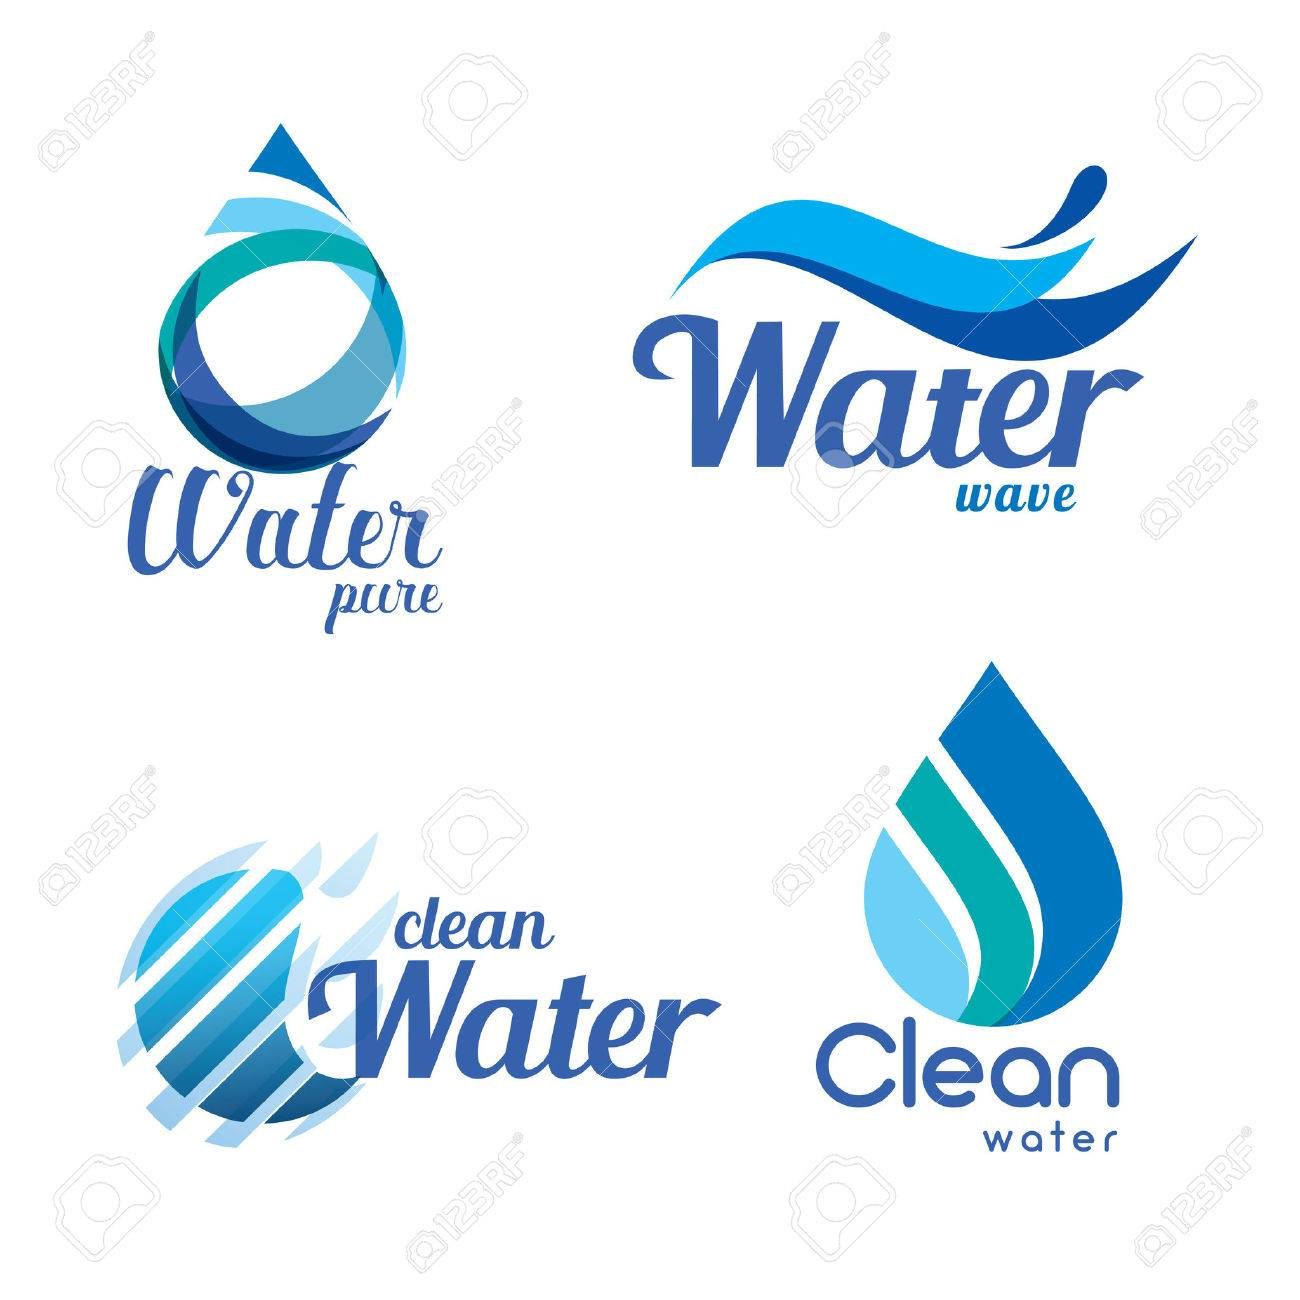 set of abstract blue symbols, water drops and wave logo template - 68890598